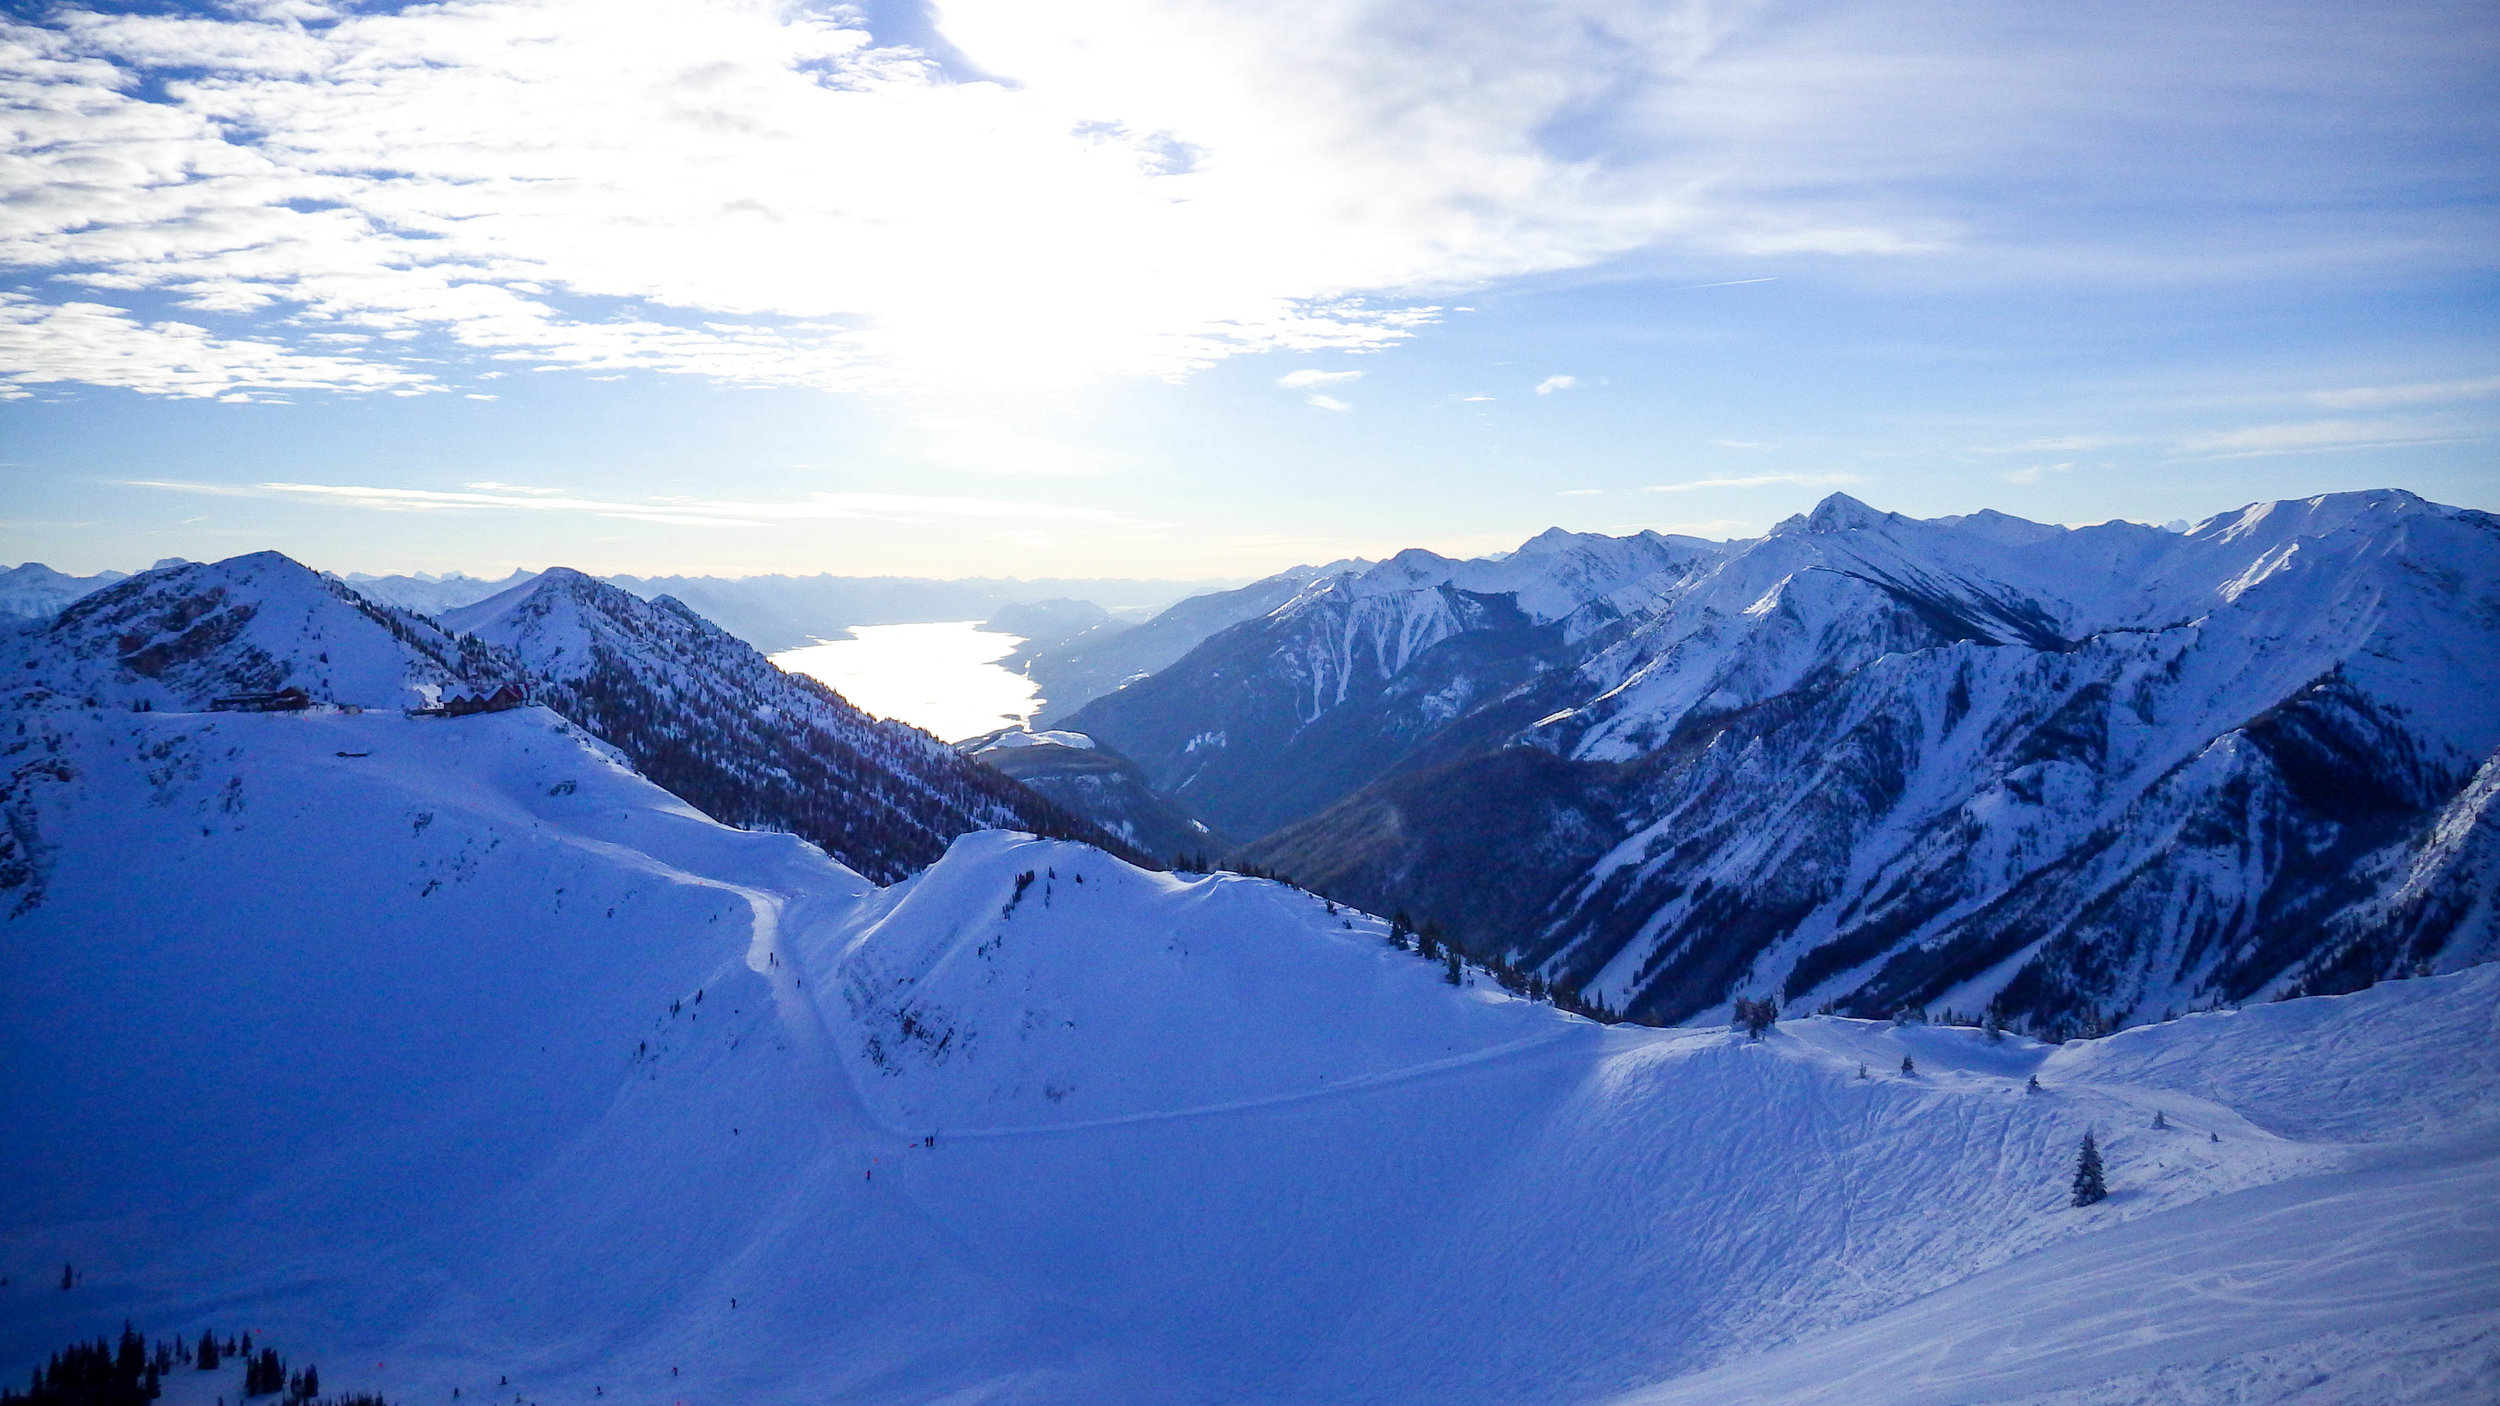 Kicking Horse is one of my favourite mountains for the views